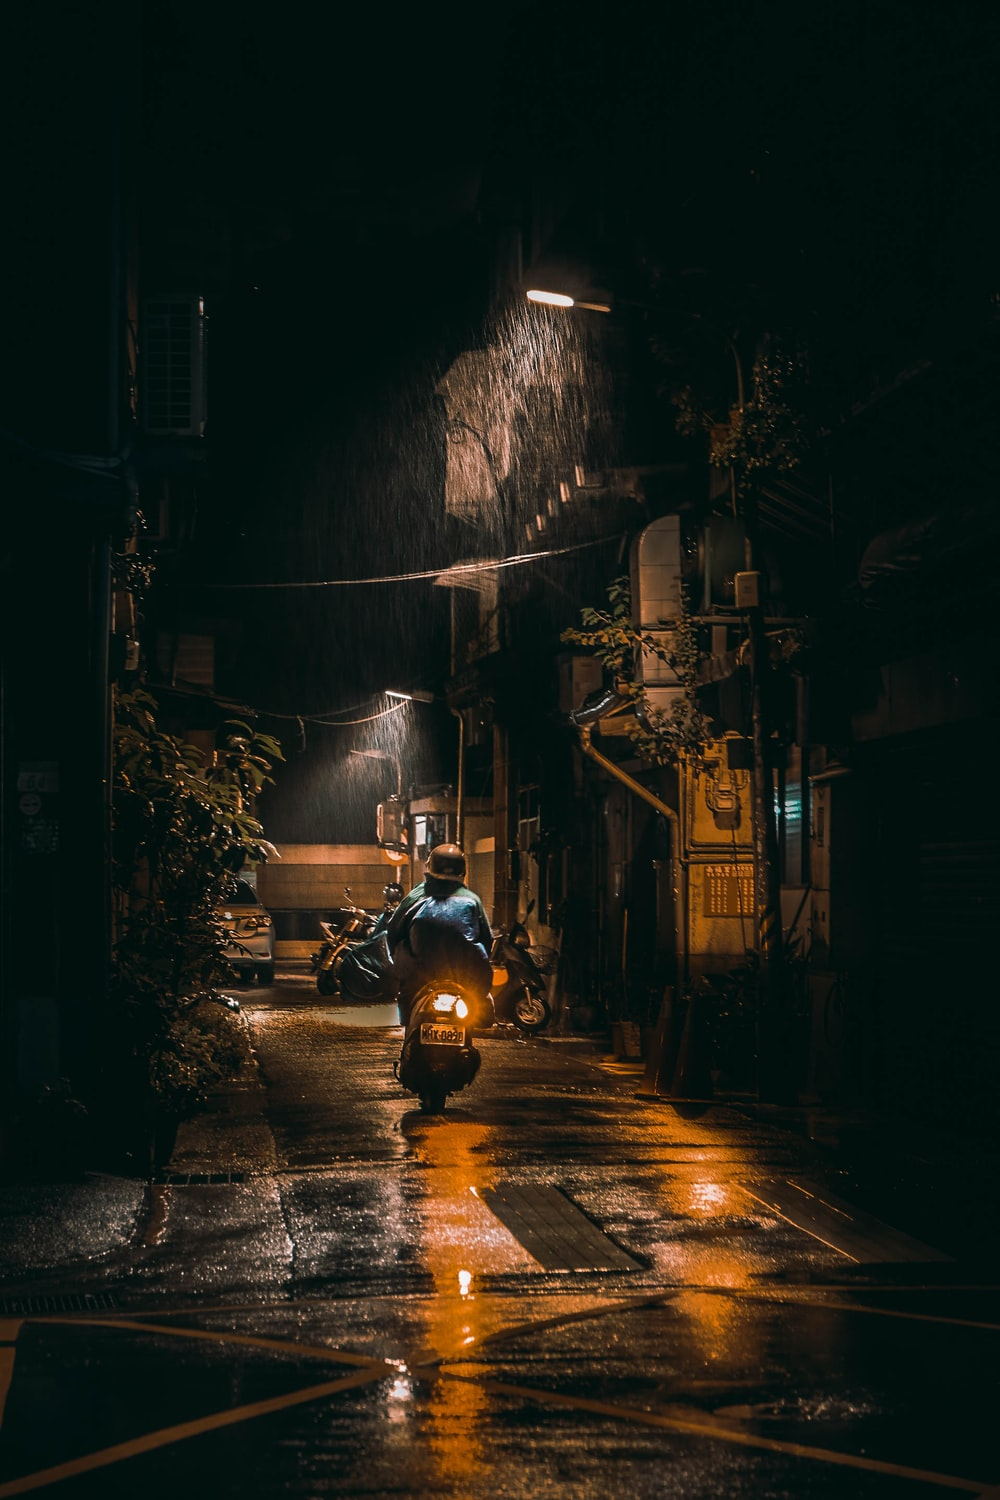 man in black jacket riding motorcycle on road during nighttime